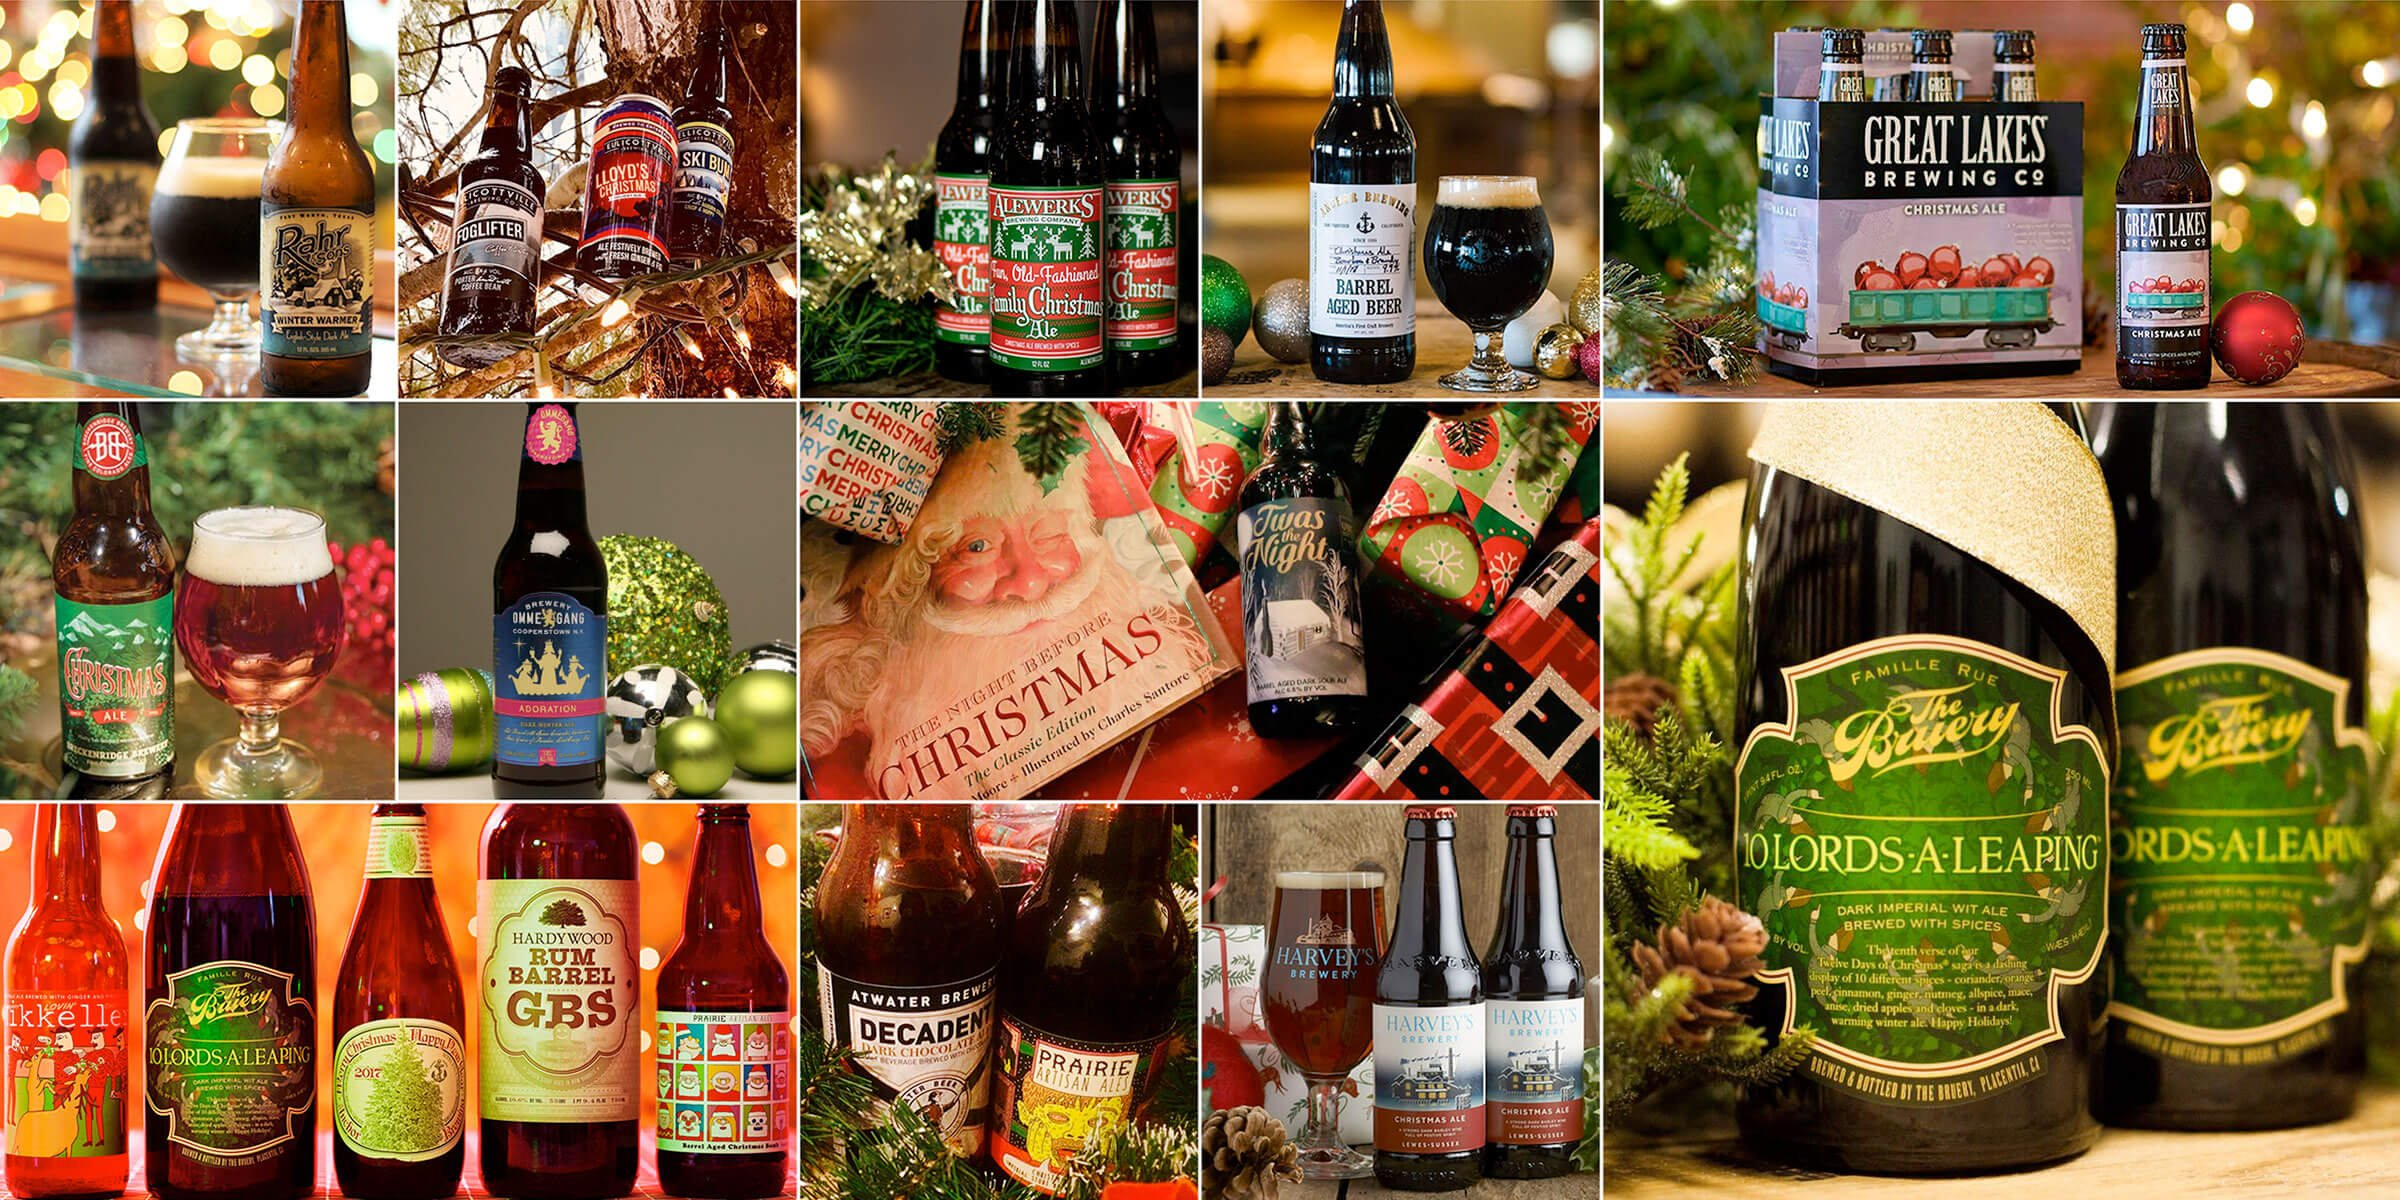 It's more than just marketing gimmick. From Vikings to modern science, there's a long legacy behind the myriad of beers and styles specially brewed for the winter Christmas season.